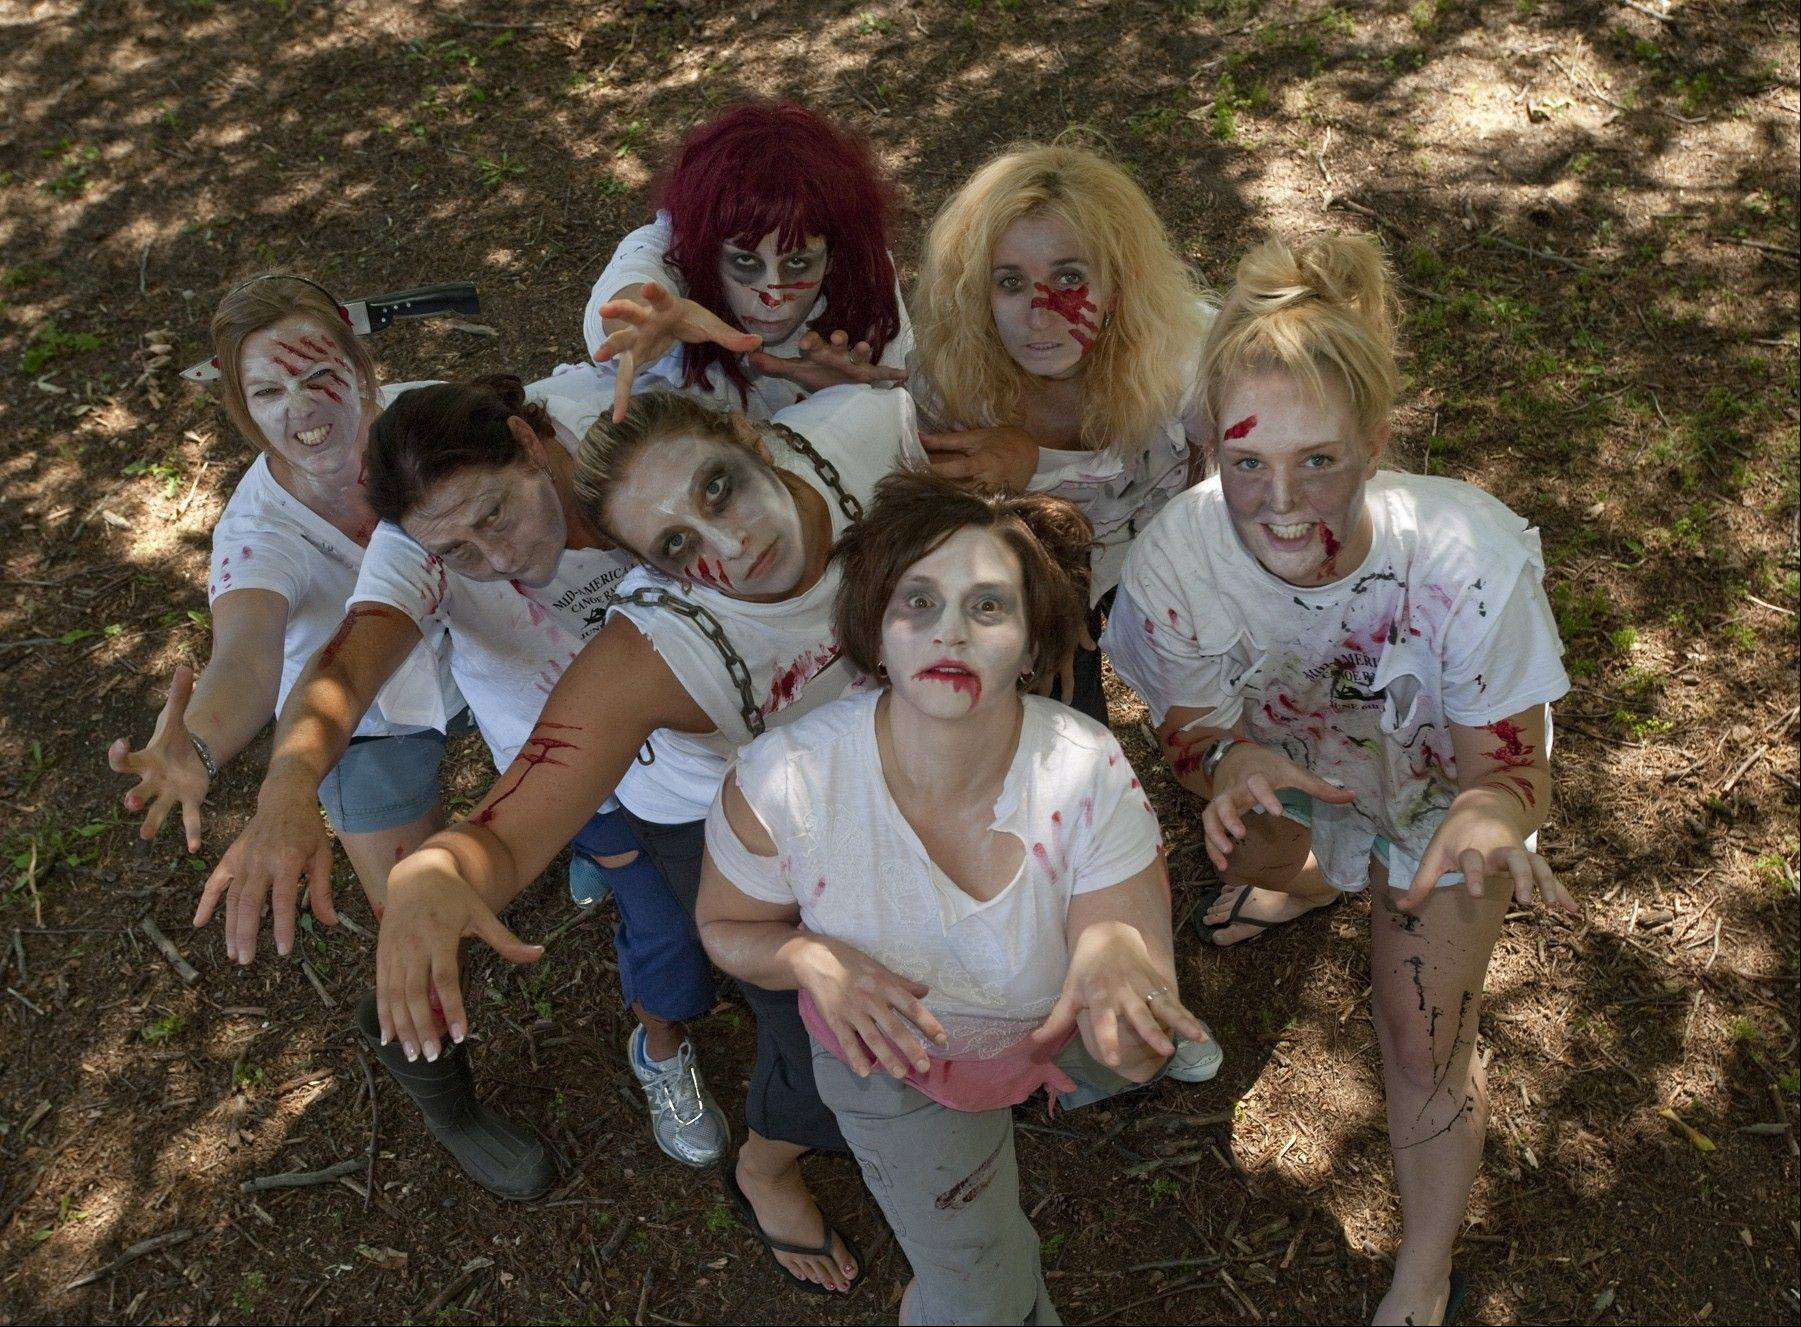 The living dead will infest Blackberry Farm on Oct. 5, when the inaugural Zombie Invasion 5K is held … for those who dare.